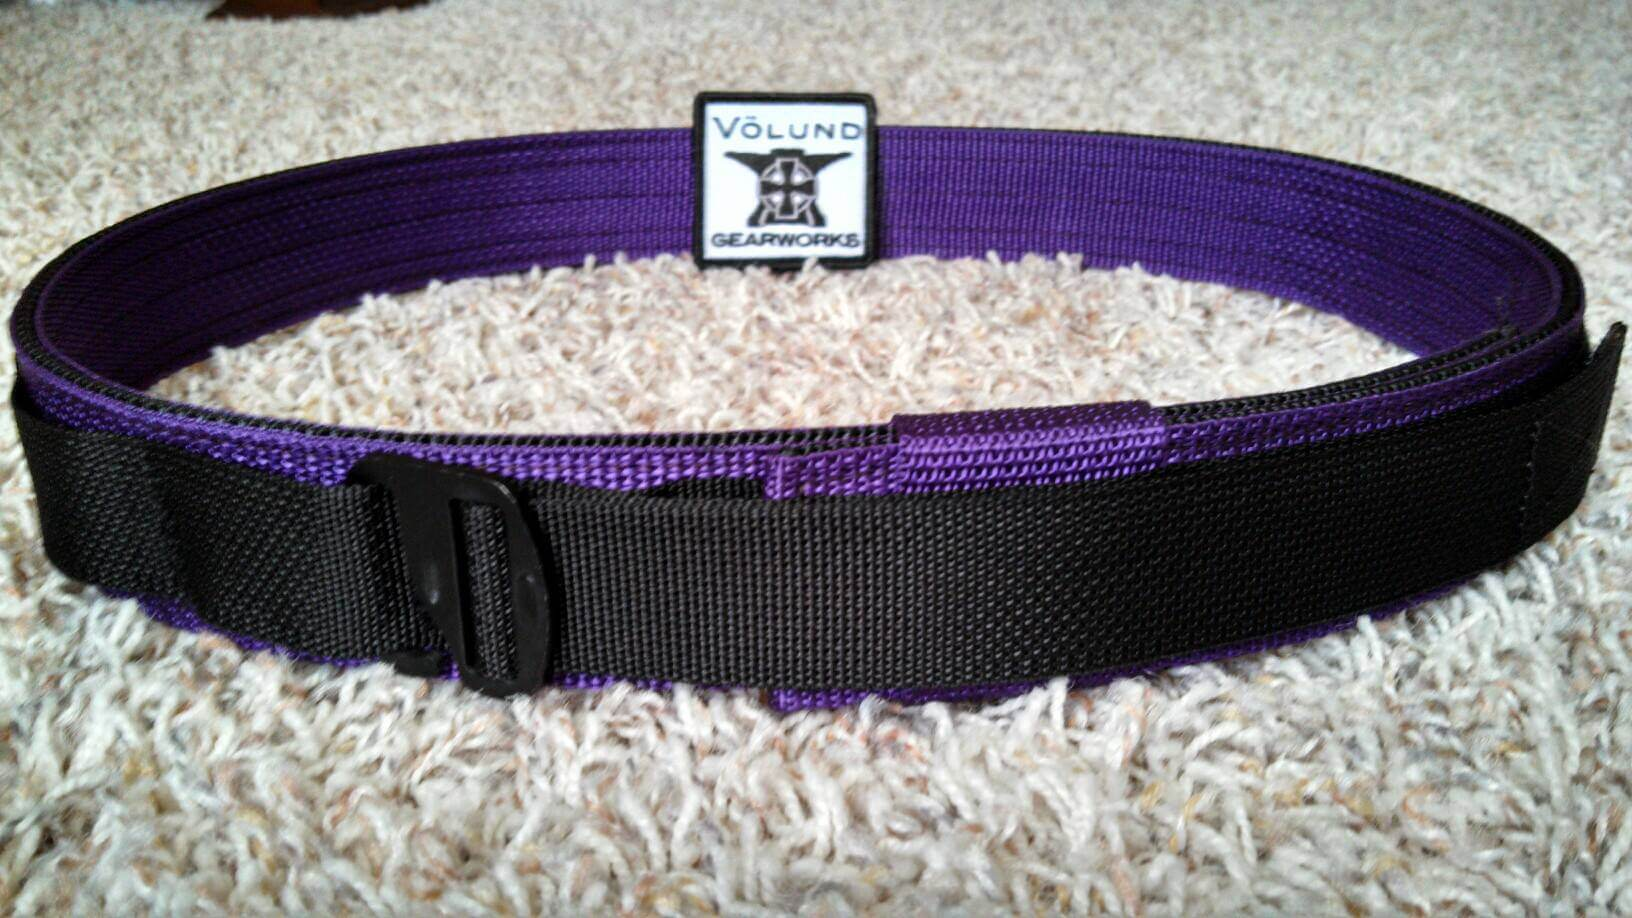 Purple/Black Volund Gearworks ATLAS Belt